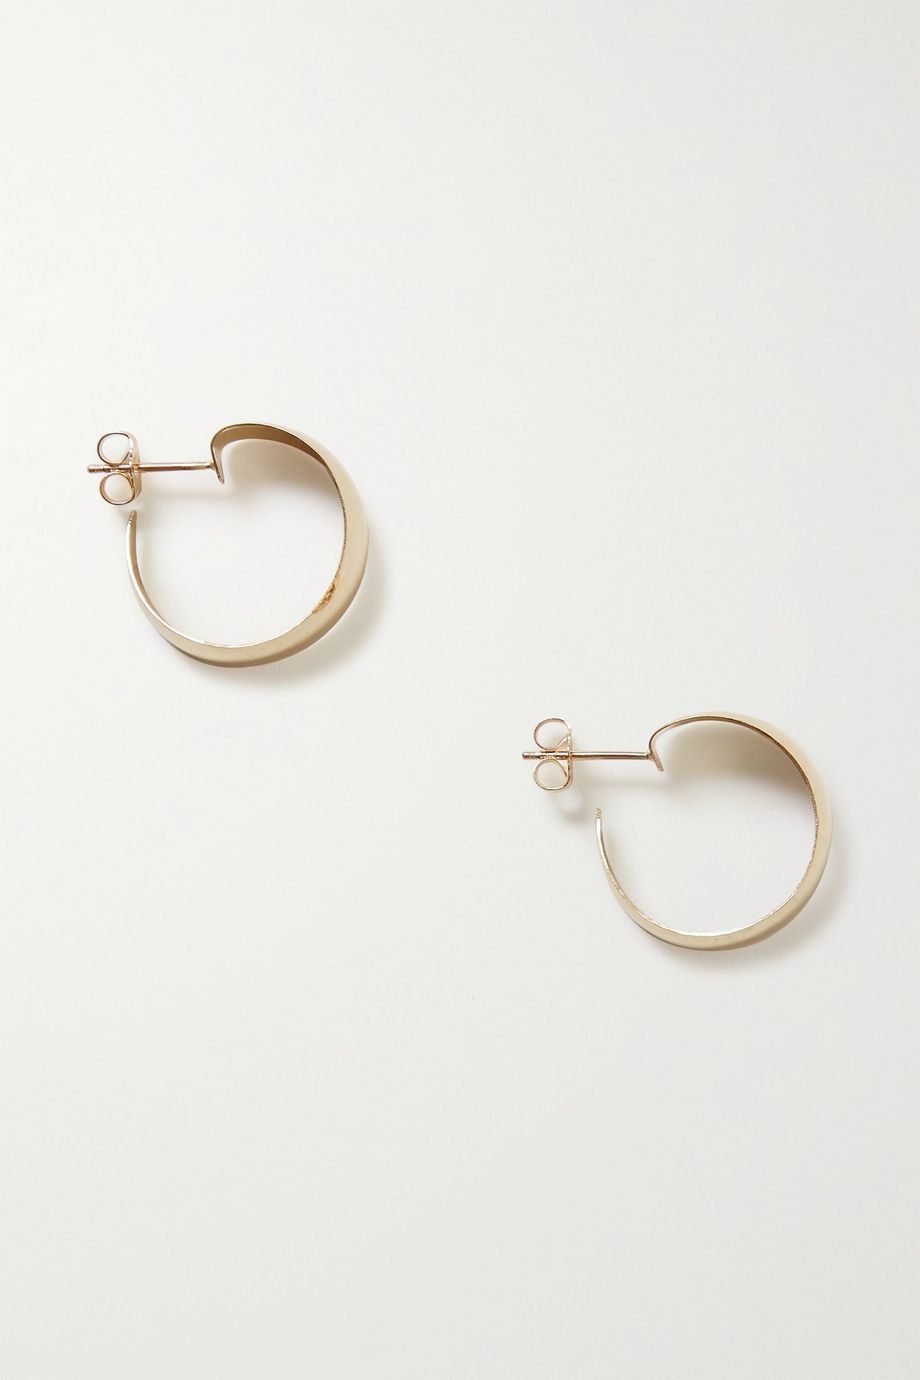 Loren Stewart + NET SUSTAIN Baby Dome gold hoop earrings